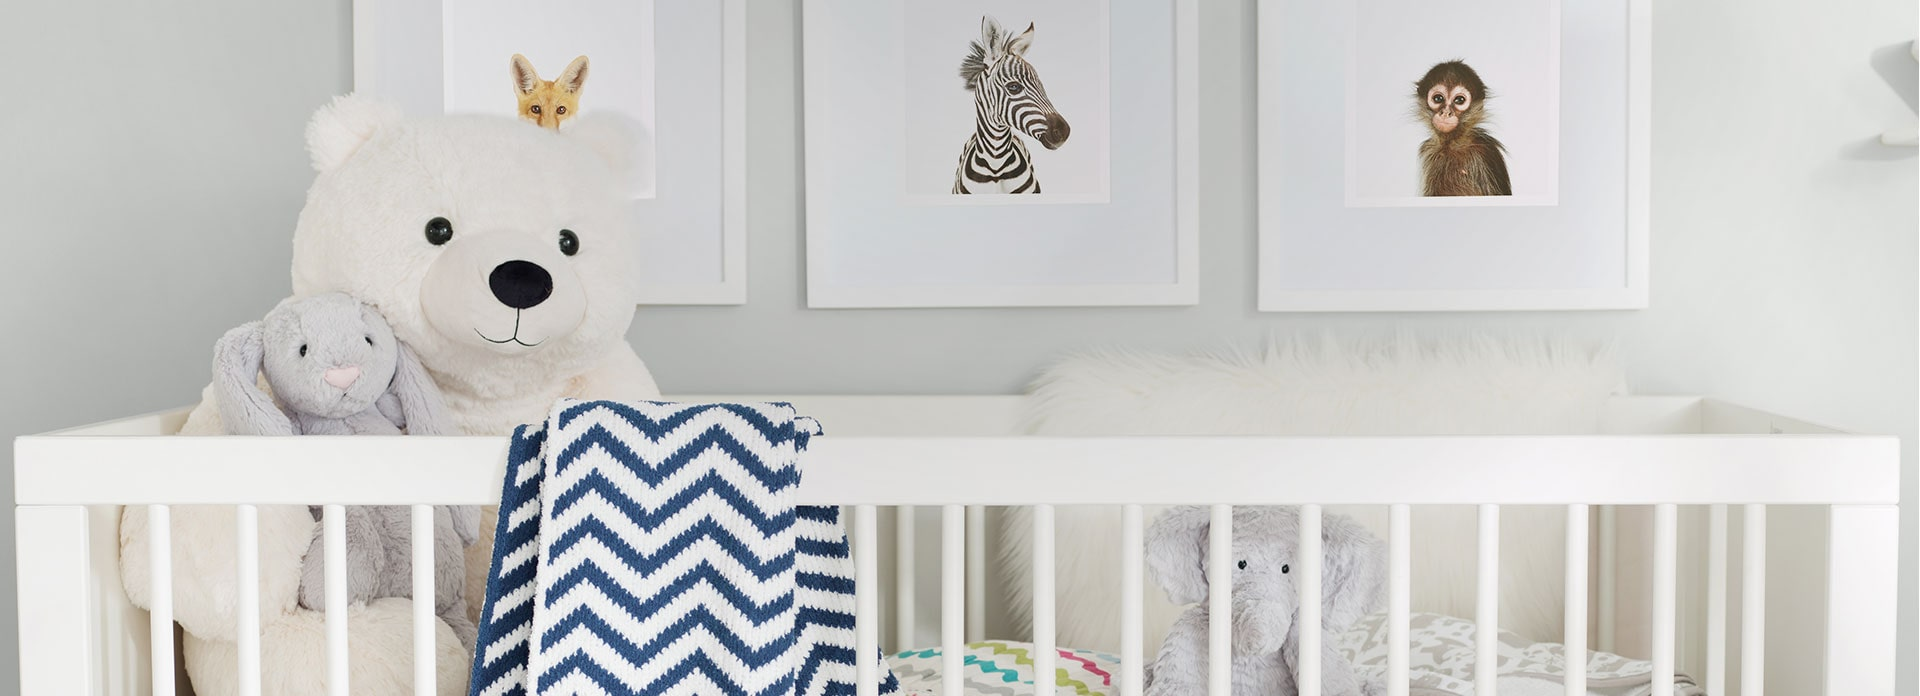 White baby crib with a bear and bunny plush inside and a chevron blanket draped over it.